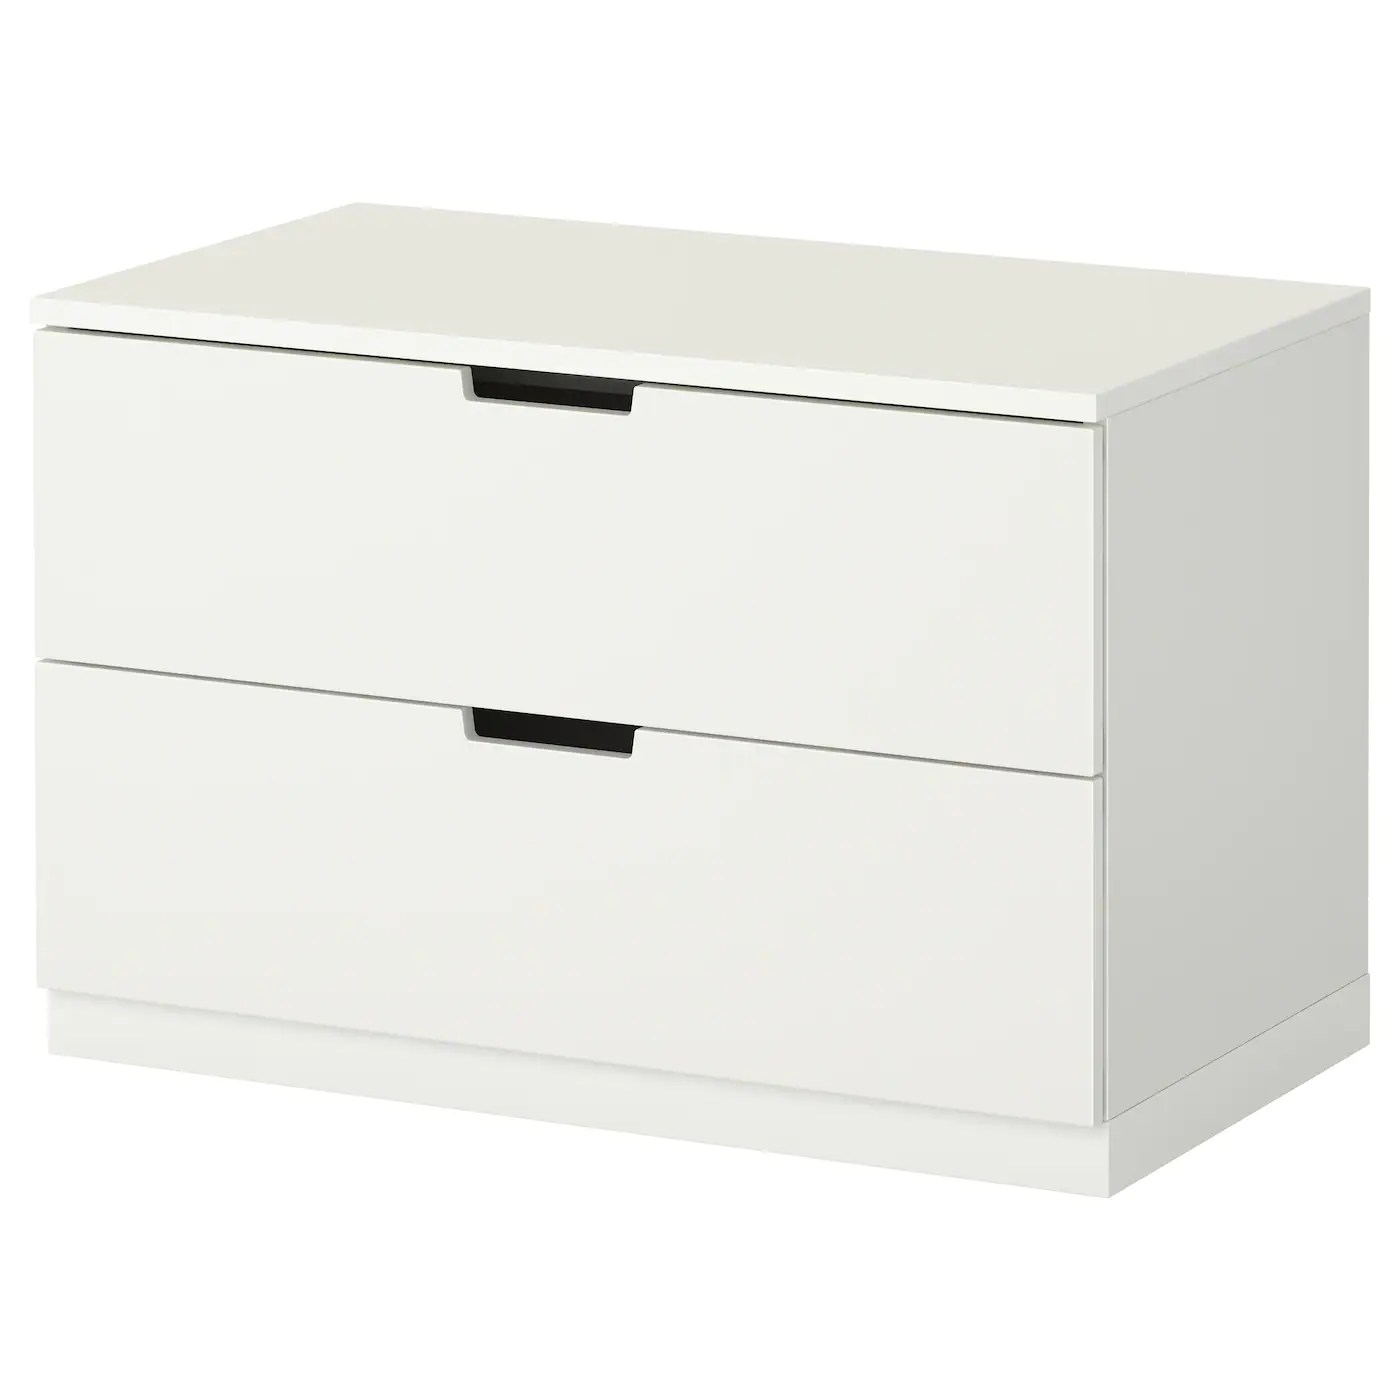 Gb En Products Storage Furniture Chest Of Drawers